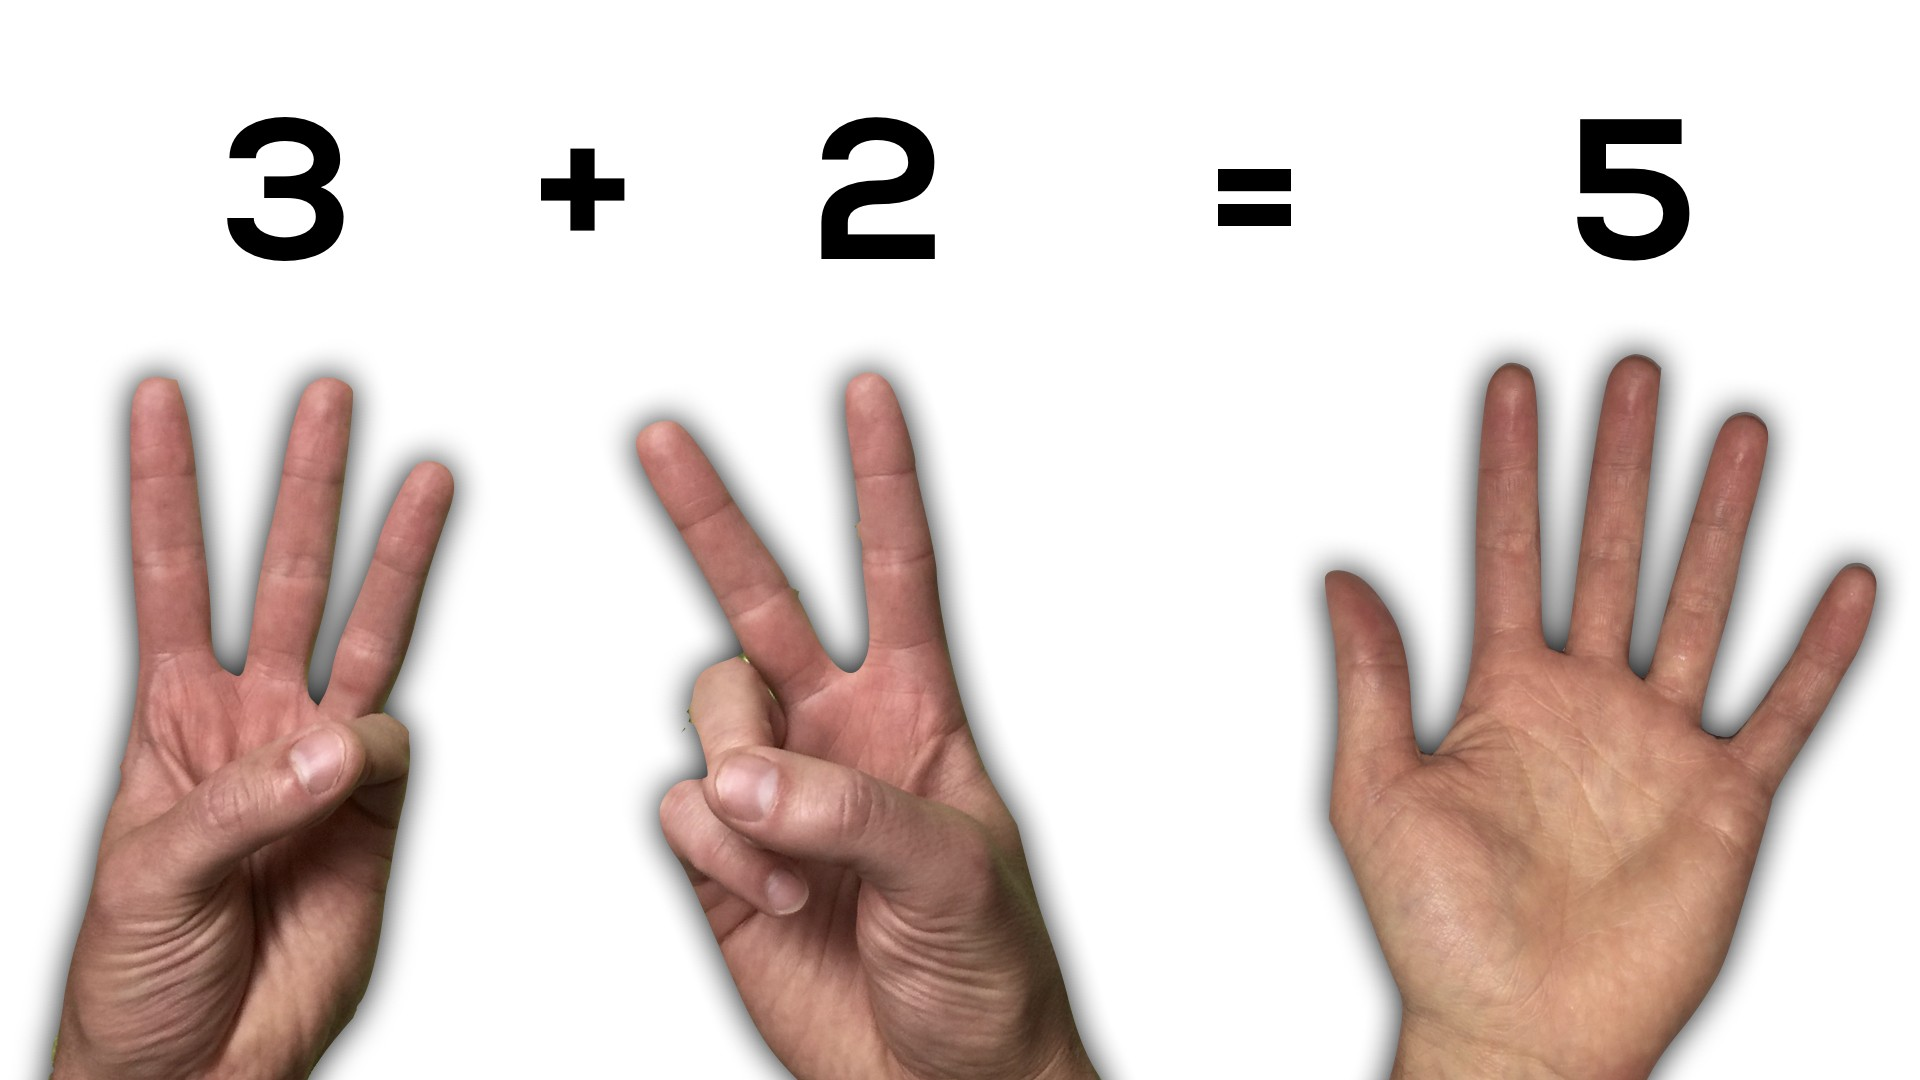 Counting and Quantity - 3 + 2 is 5